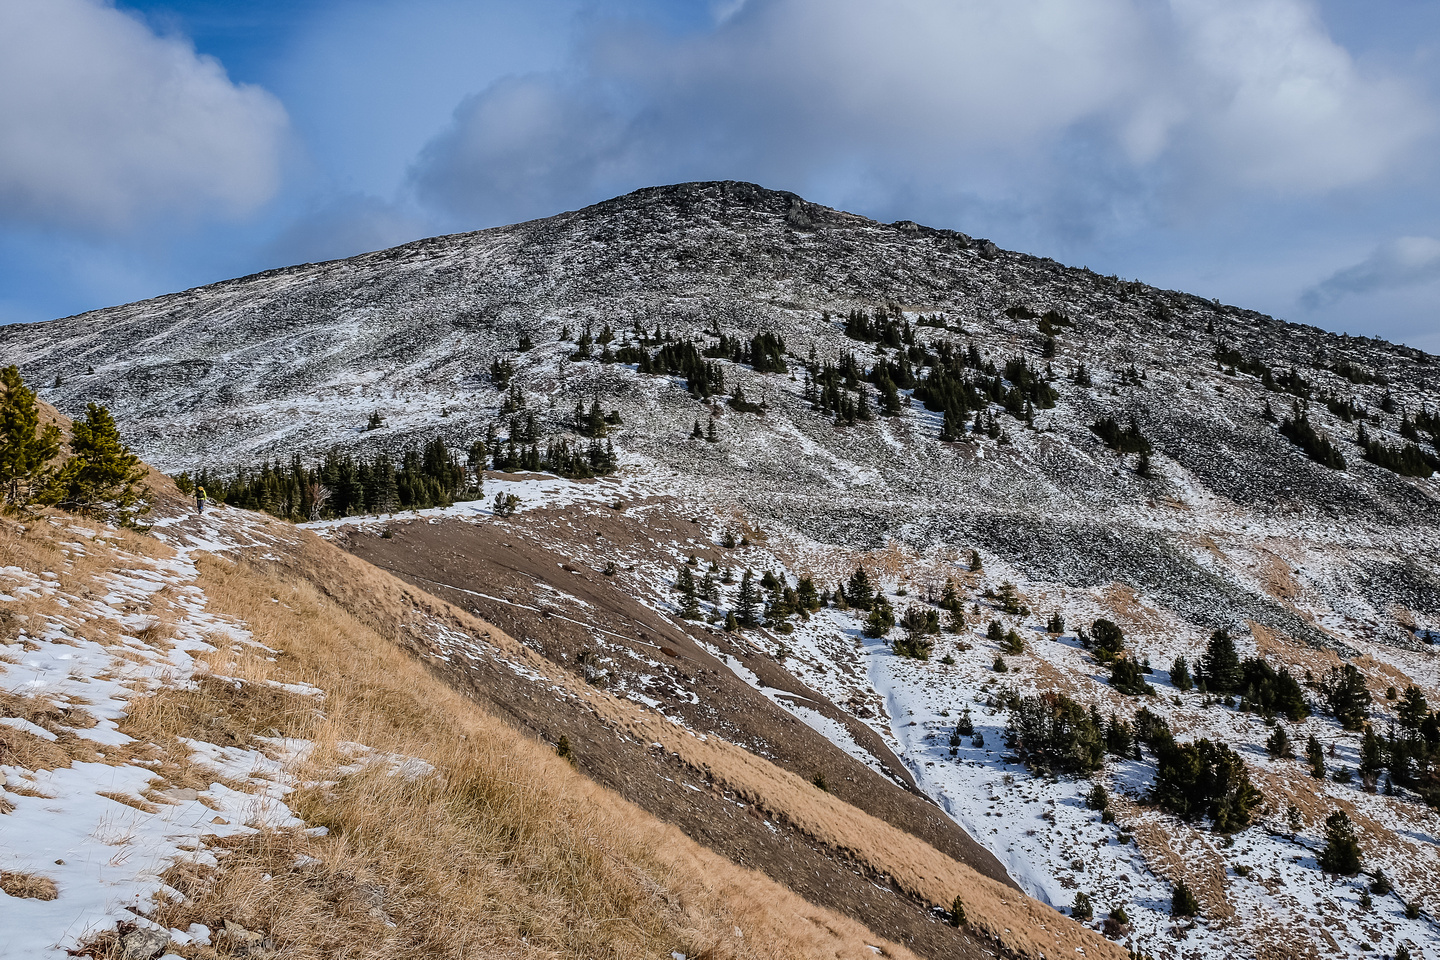 We followed a trail towards Cabin Ridge on the south side of the abutment ridge.